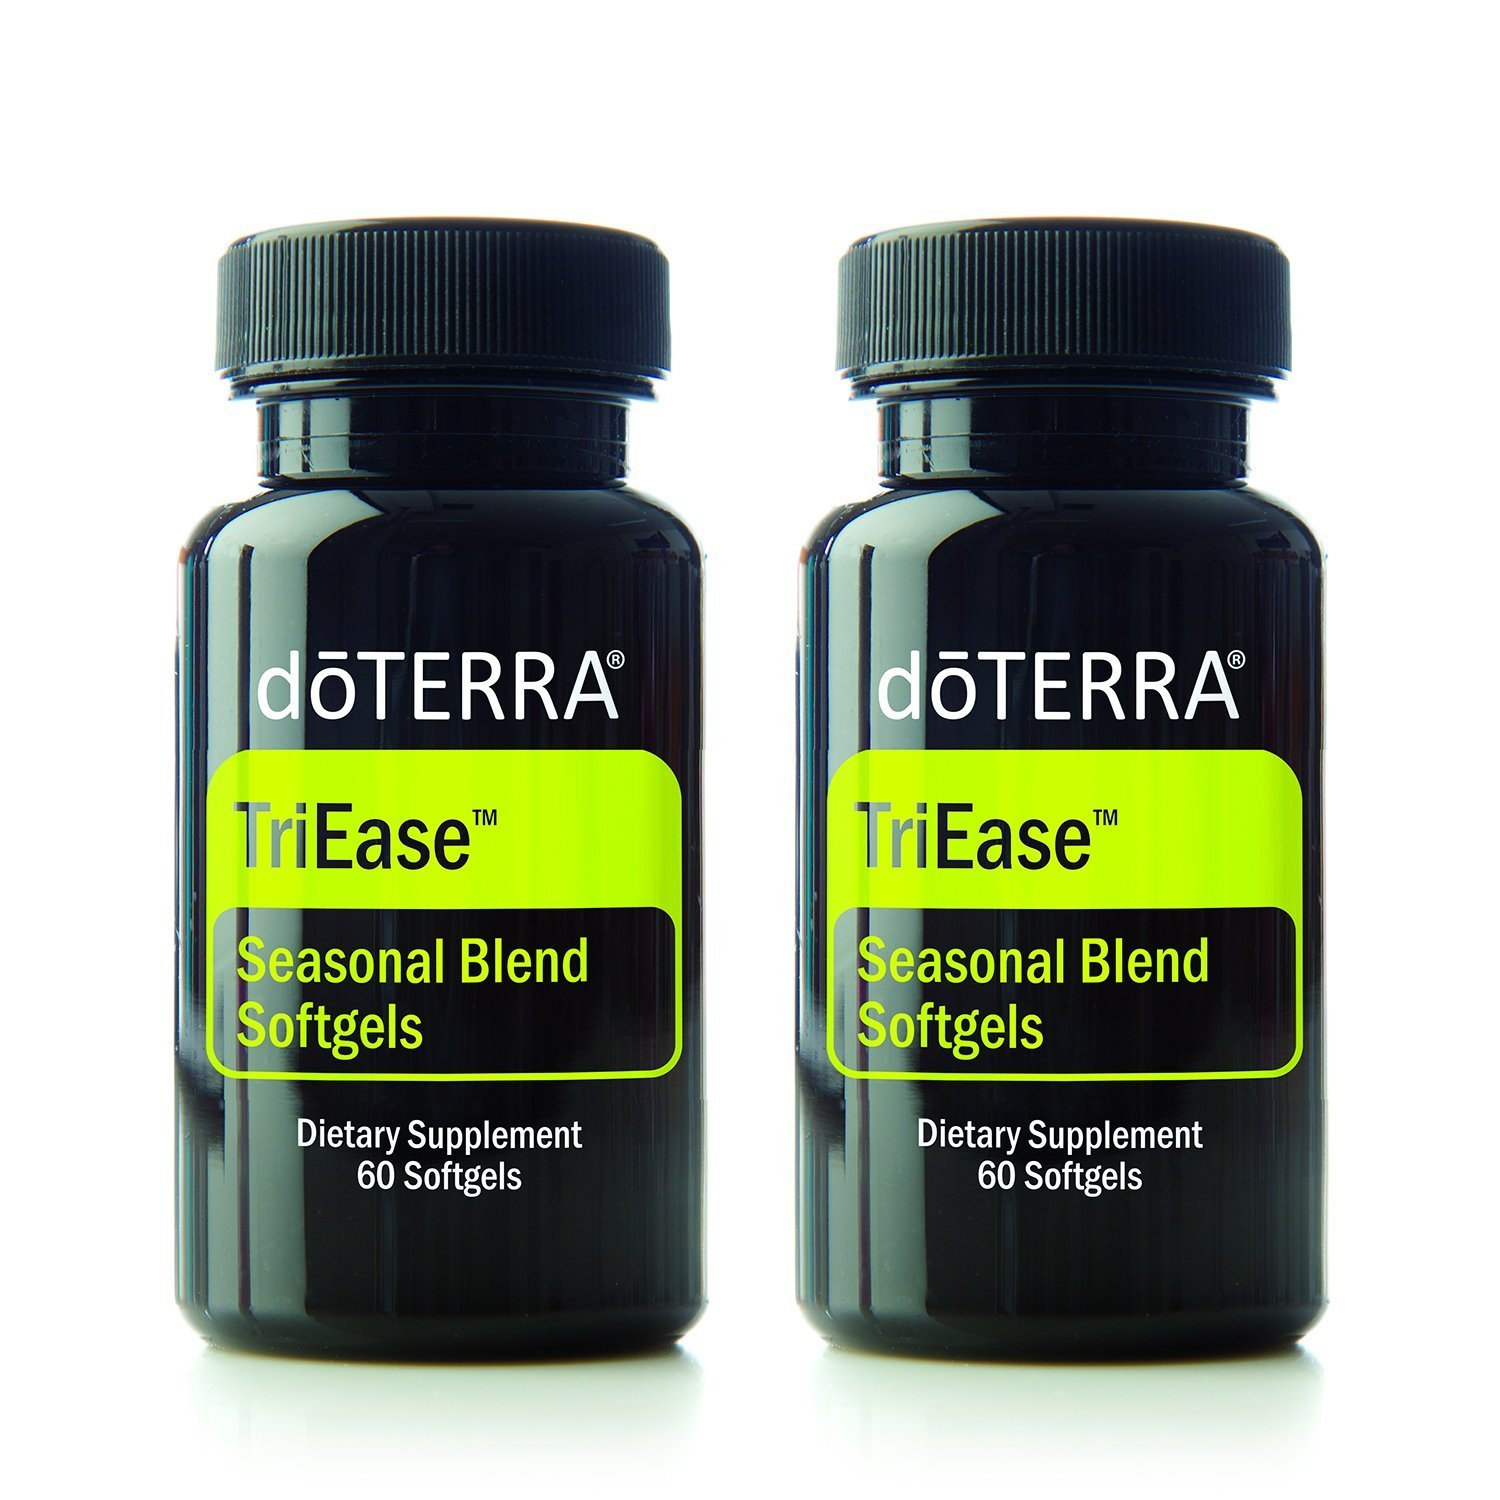 DoTERRA TriEase Blend Softgels (2 Pack) by doTERRA (Image #1)